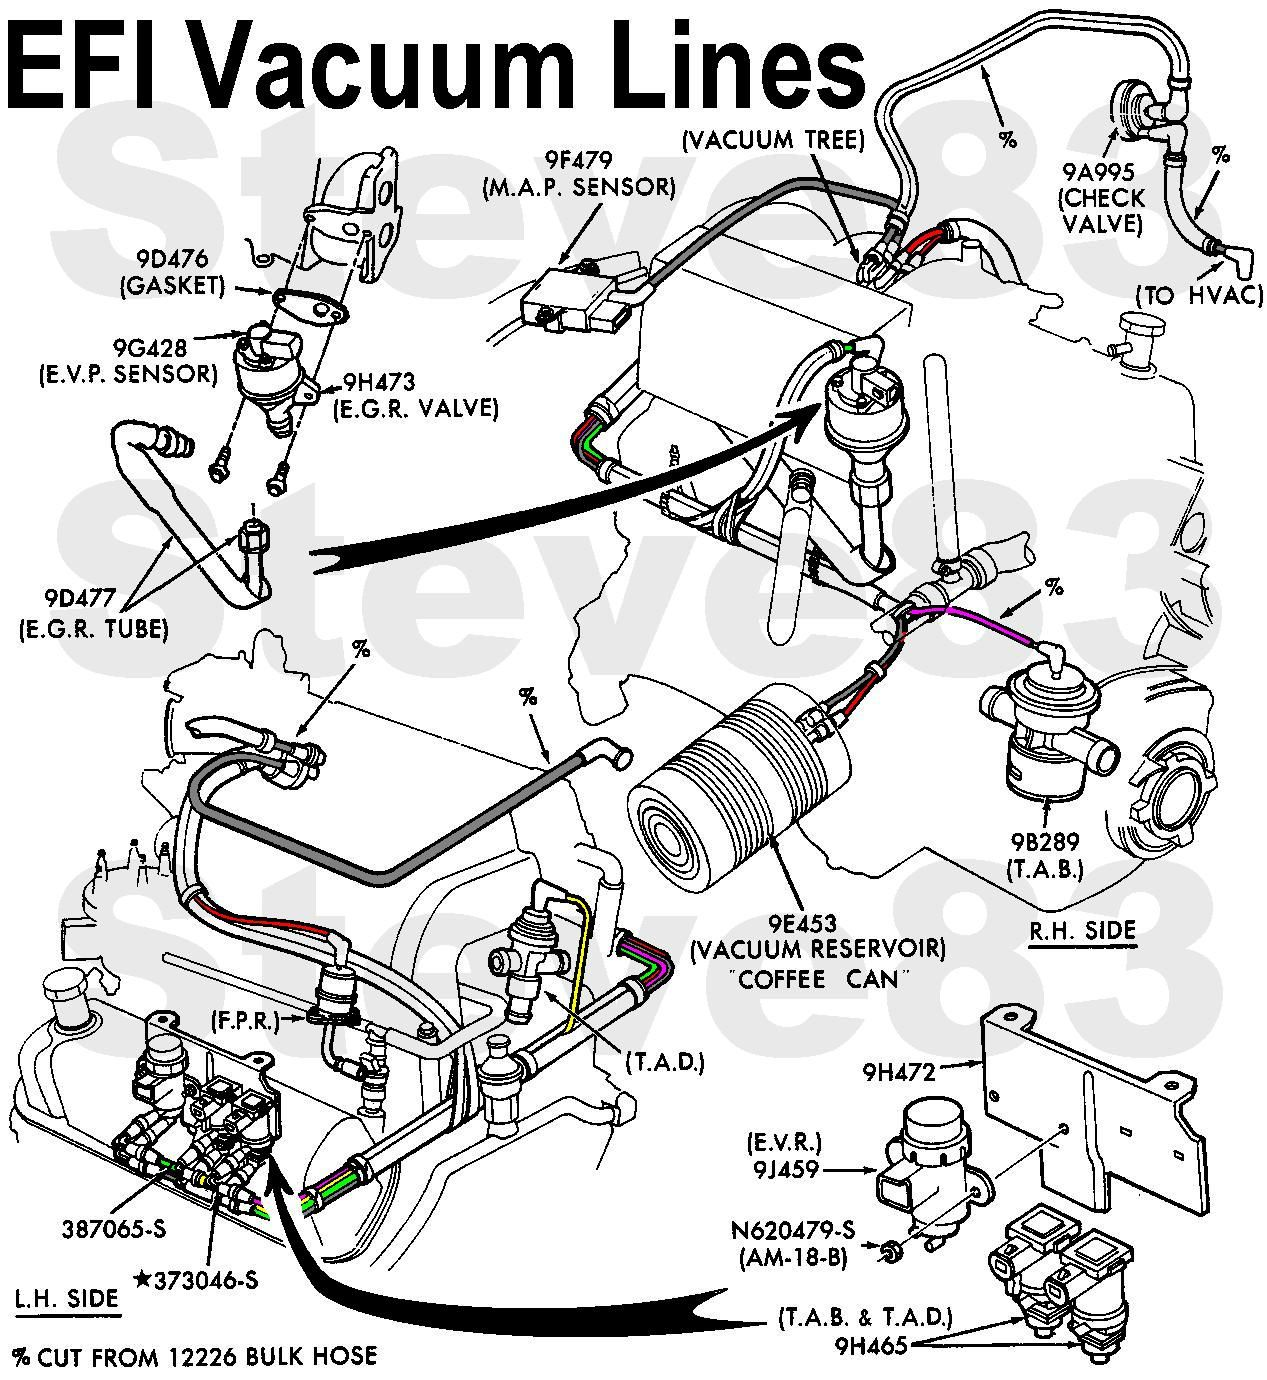 1993 Ford F150 Xlt Radio Wiring Diagram: Ford F150 Engine Diagram 1989